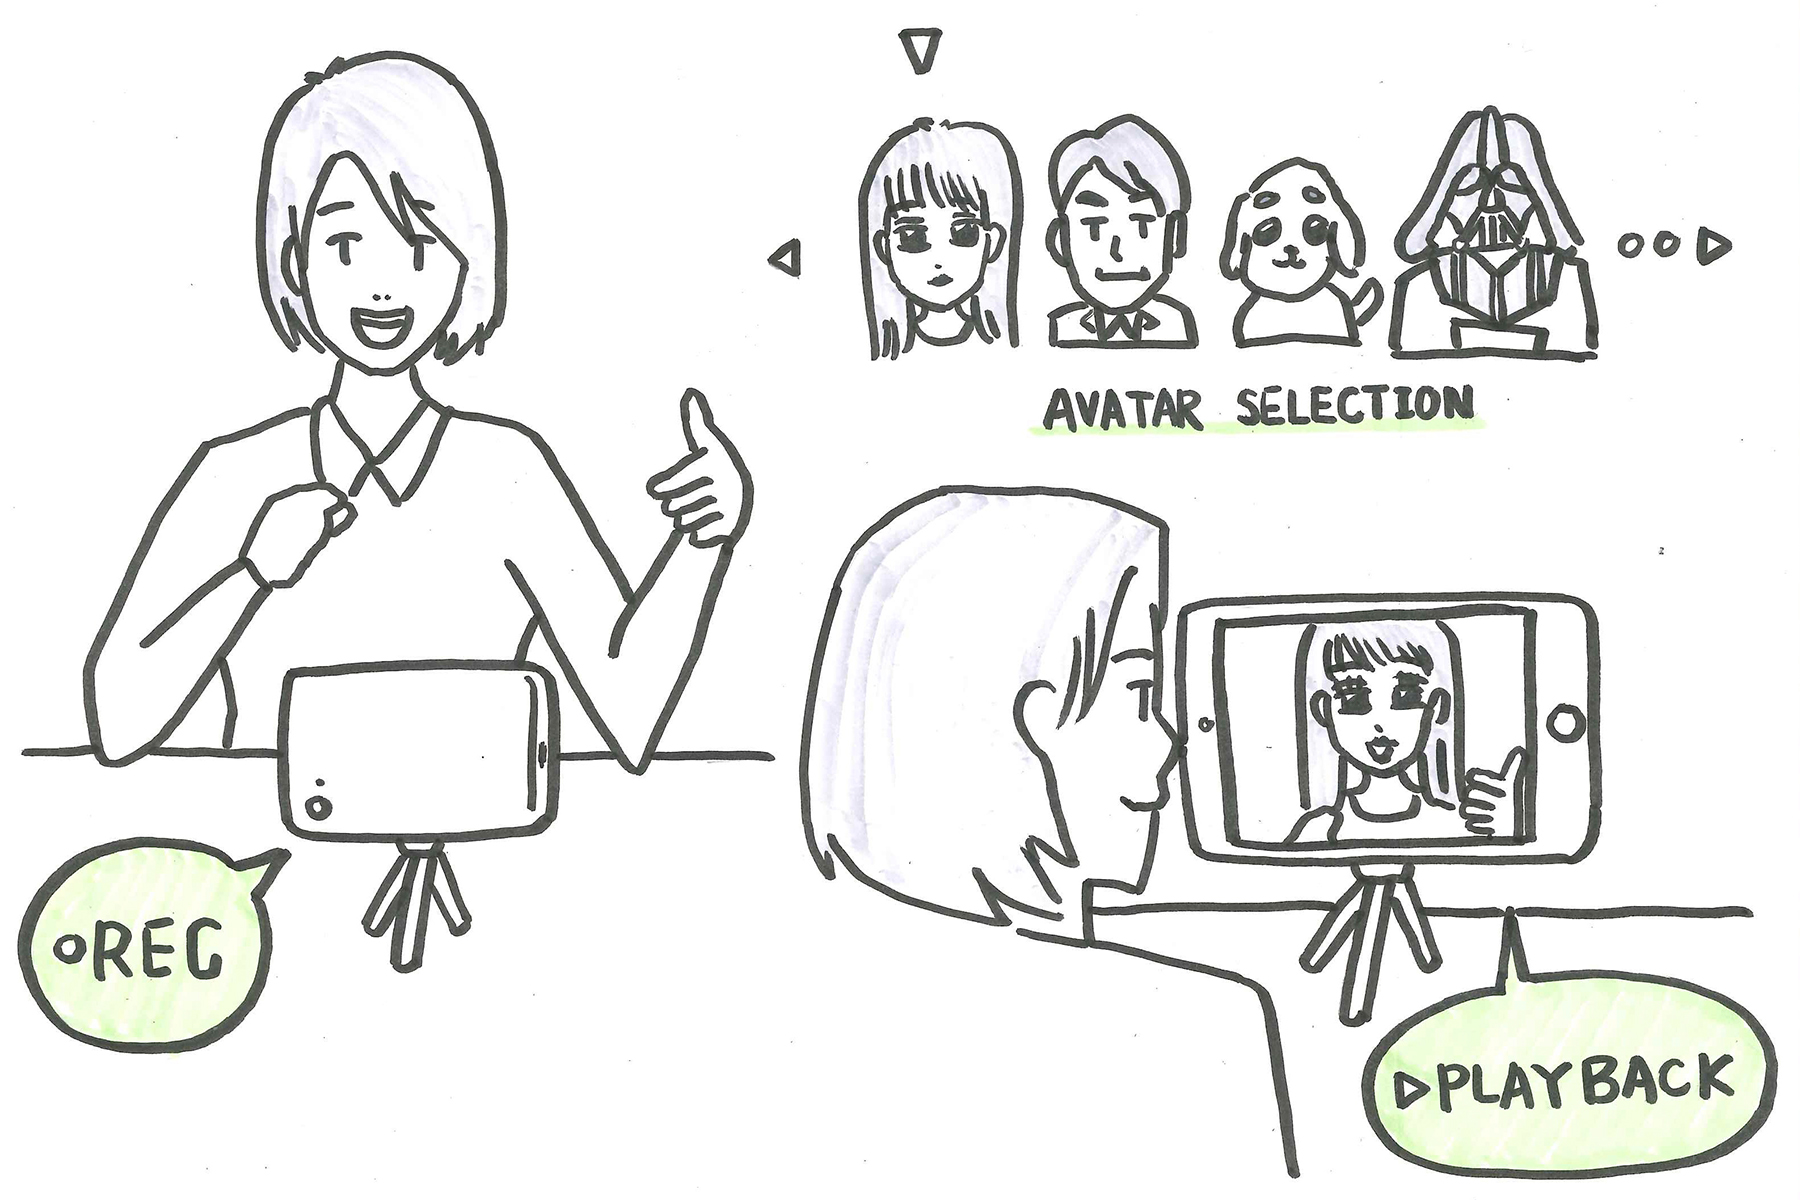 """Speech Avatar  By removing the """"self"""" identifiers and replace it with fun filters, this tool makes it easier for people to do self-assessment by video recording speeches.    Feedback: It could be a fun add-on, but might be too shallow without a framework for self-assessment."""